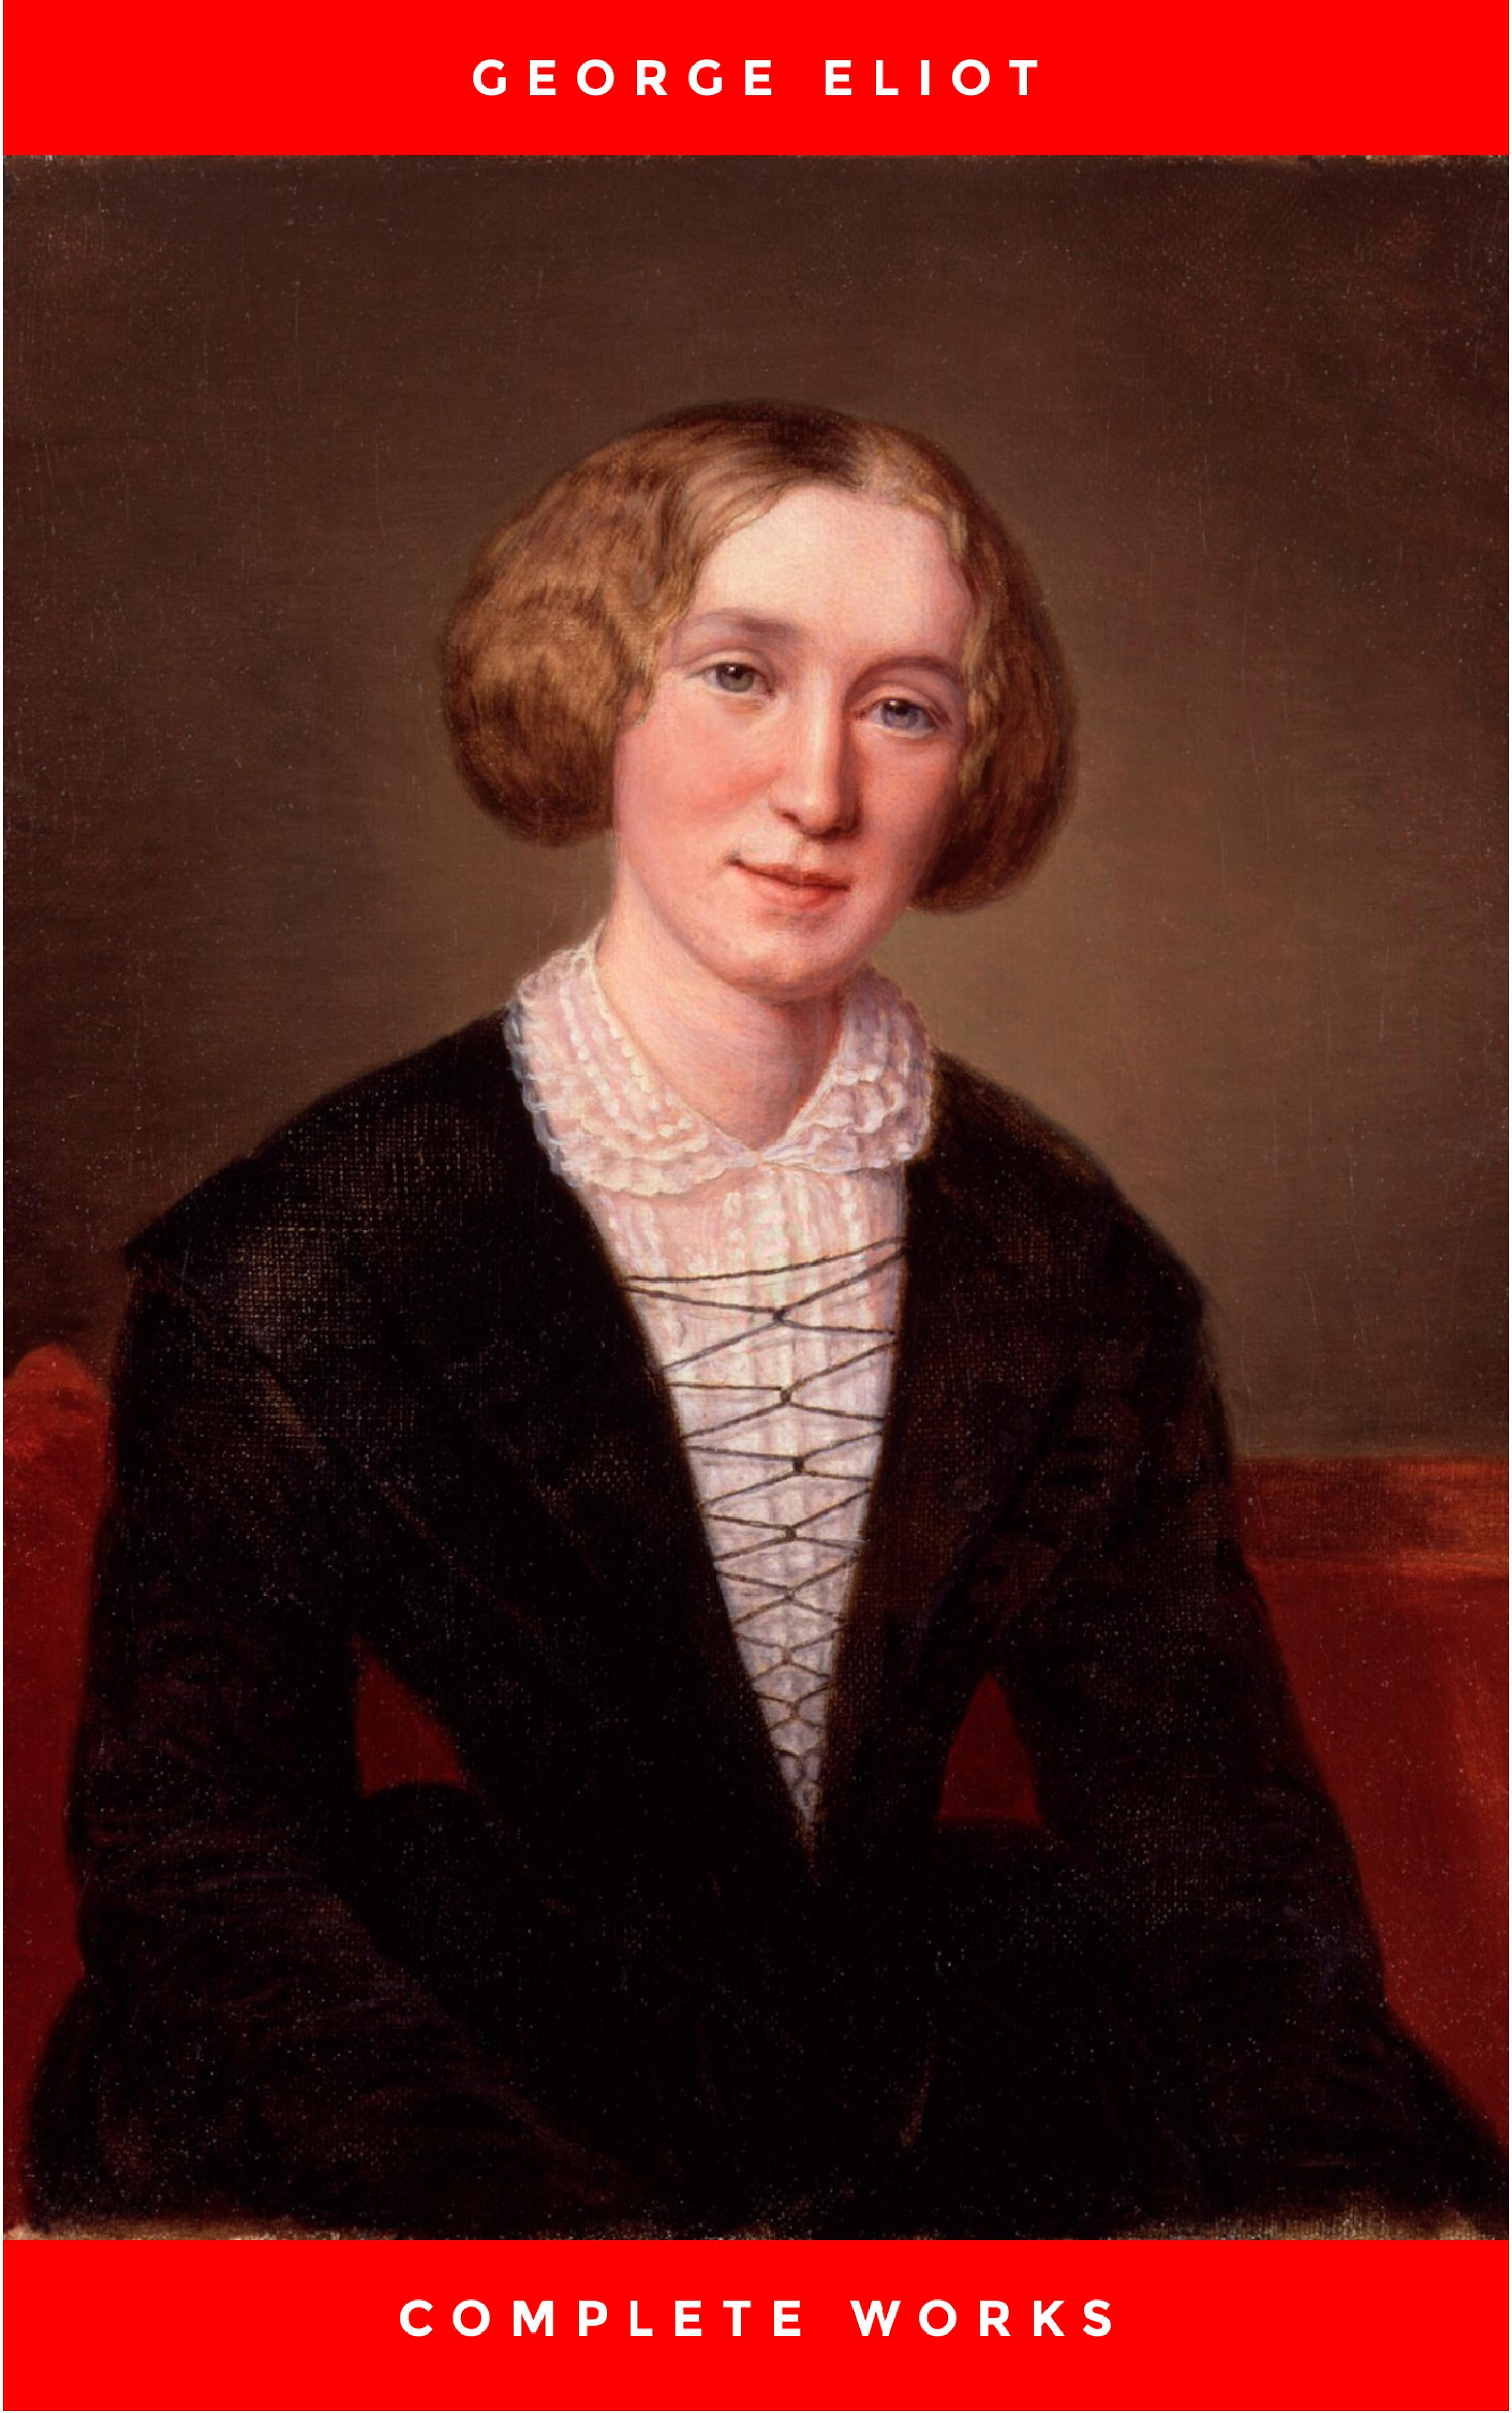 The Complete Works of George Eliot.(10 Volume Set)(limited to 1000 Sets. Set #283)(edition De Luxe)